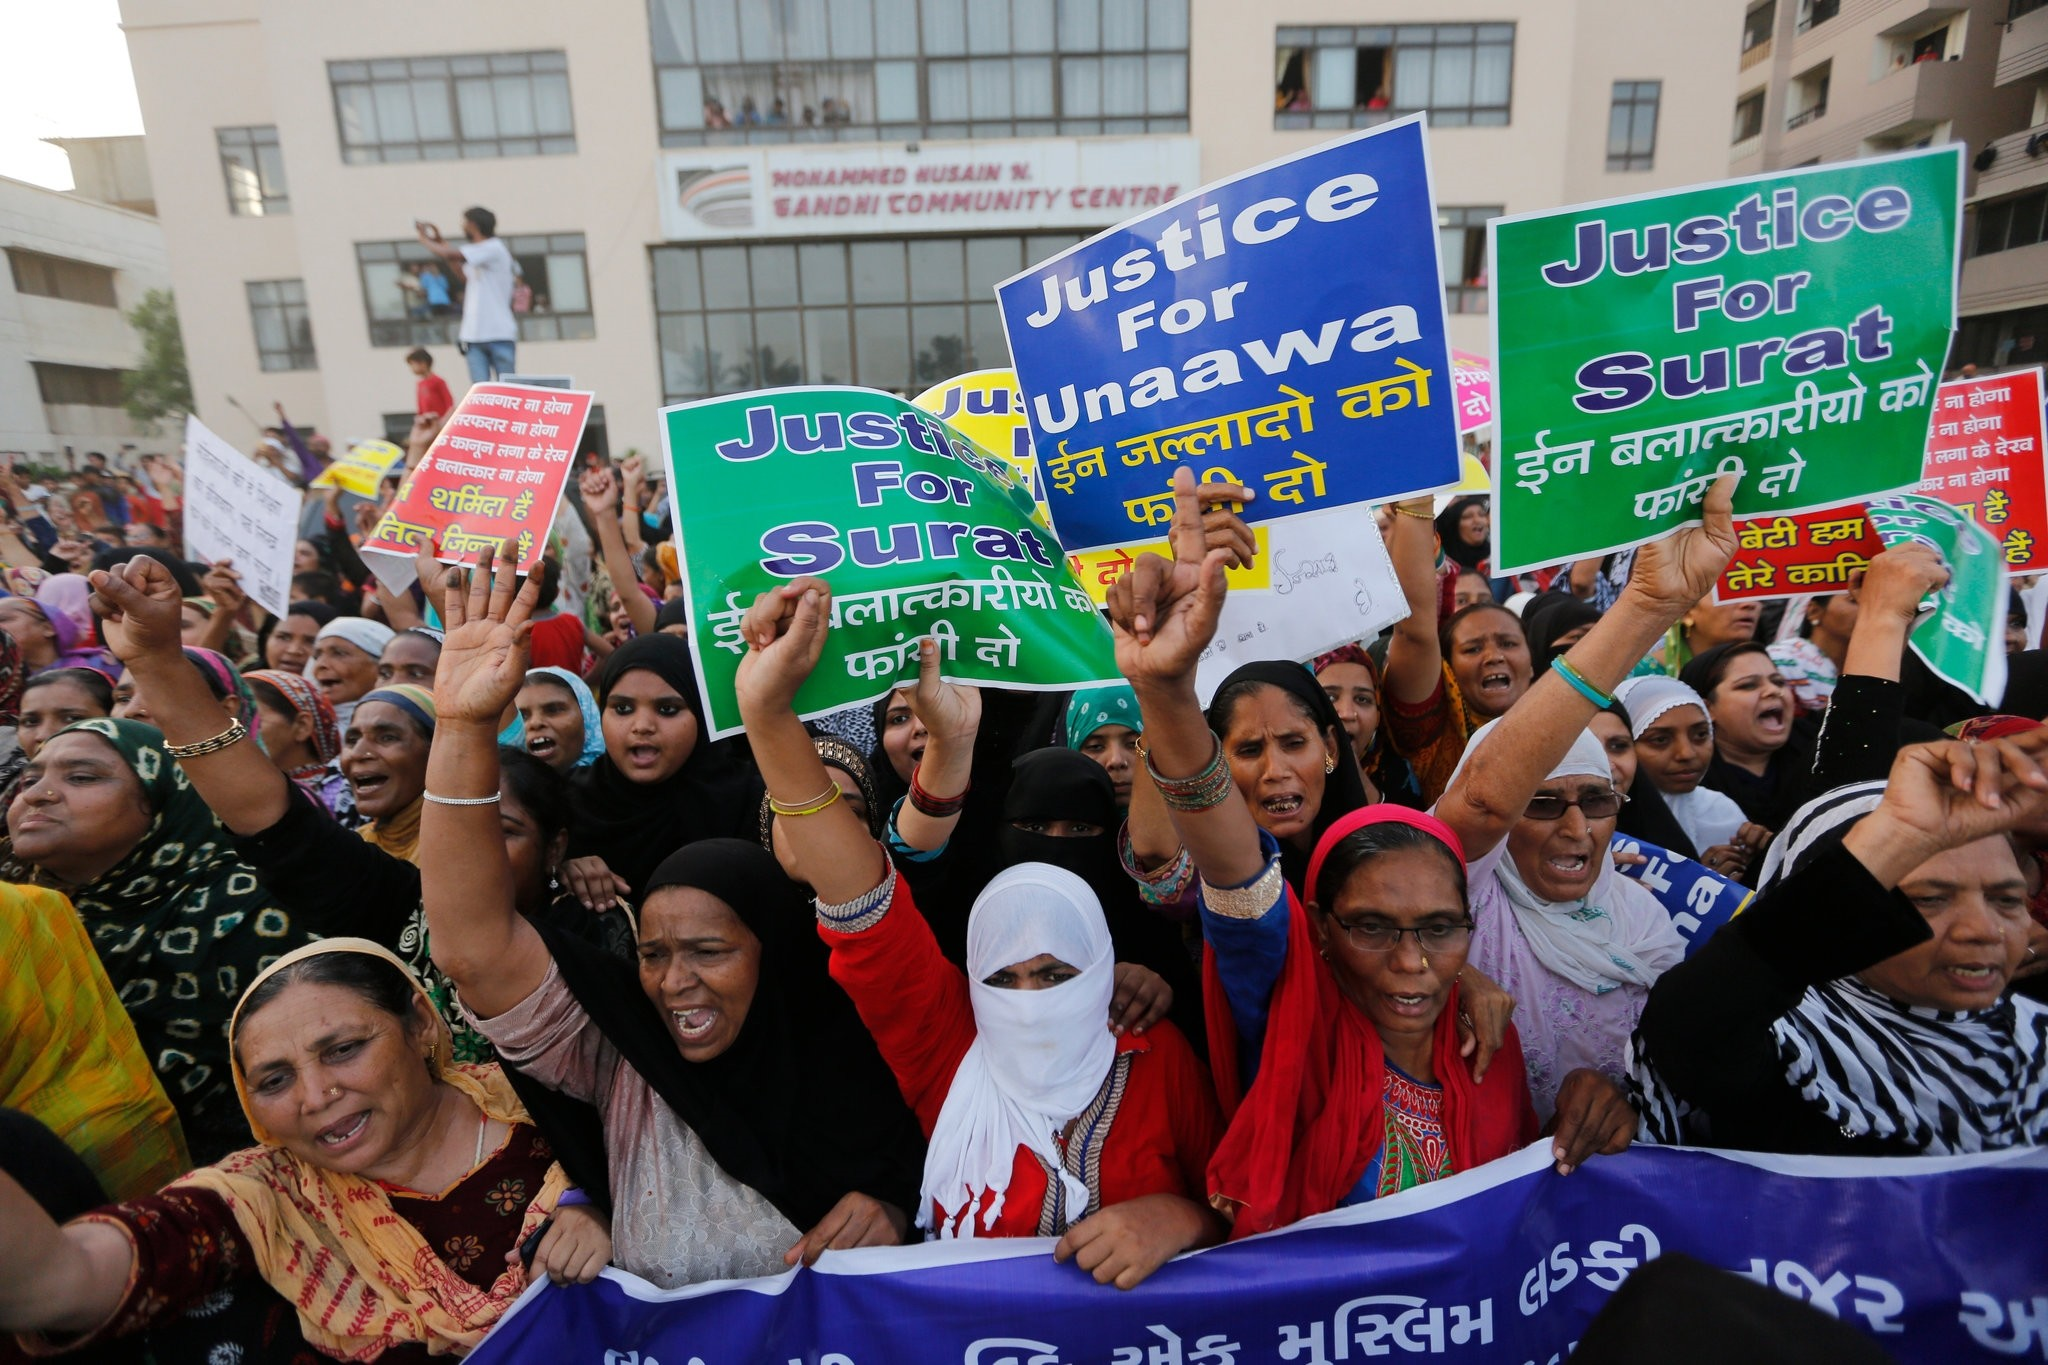 Indian women shout slogans as they participate in a rally to protest against recent incidents of rape, in Ahmadabad, India, Wednesday, April 18, 2018. (AP Photo)